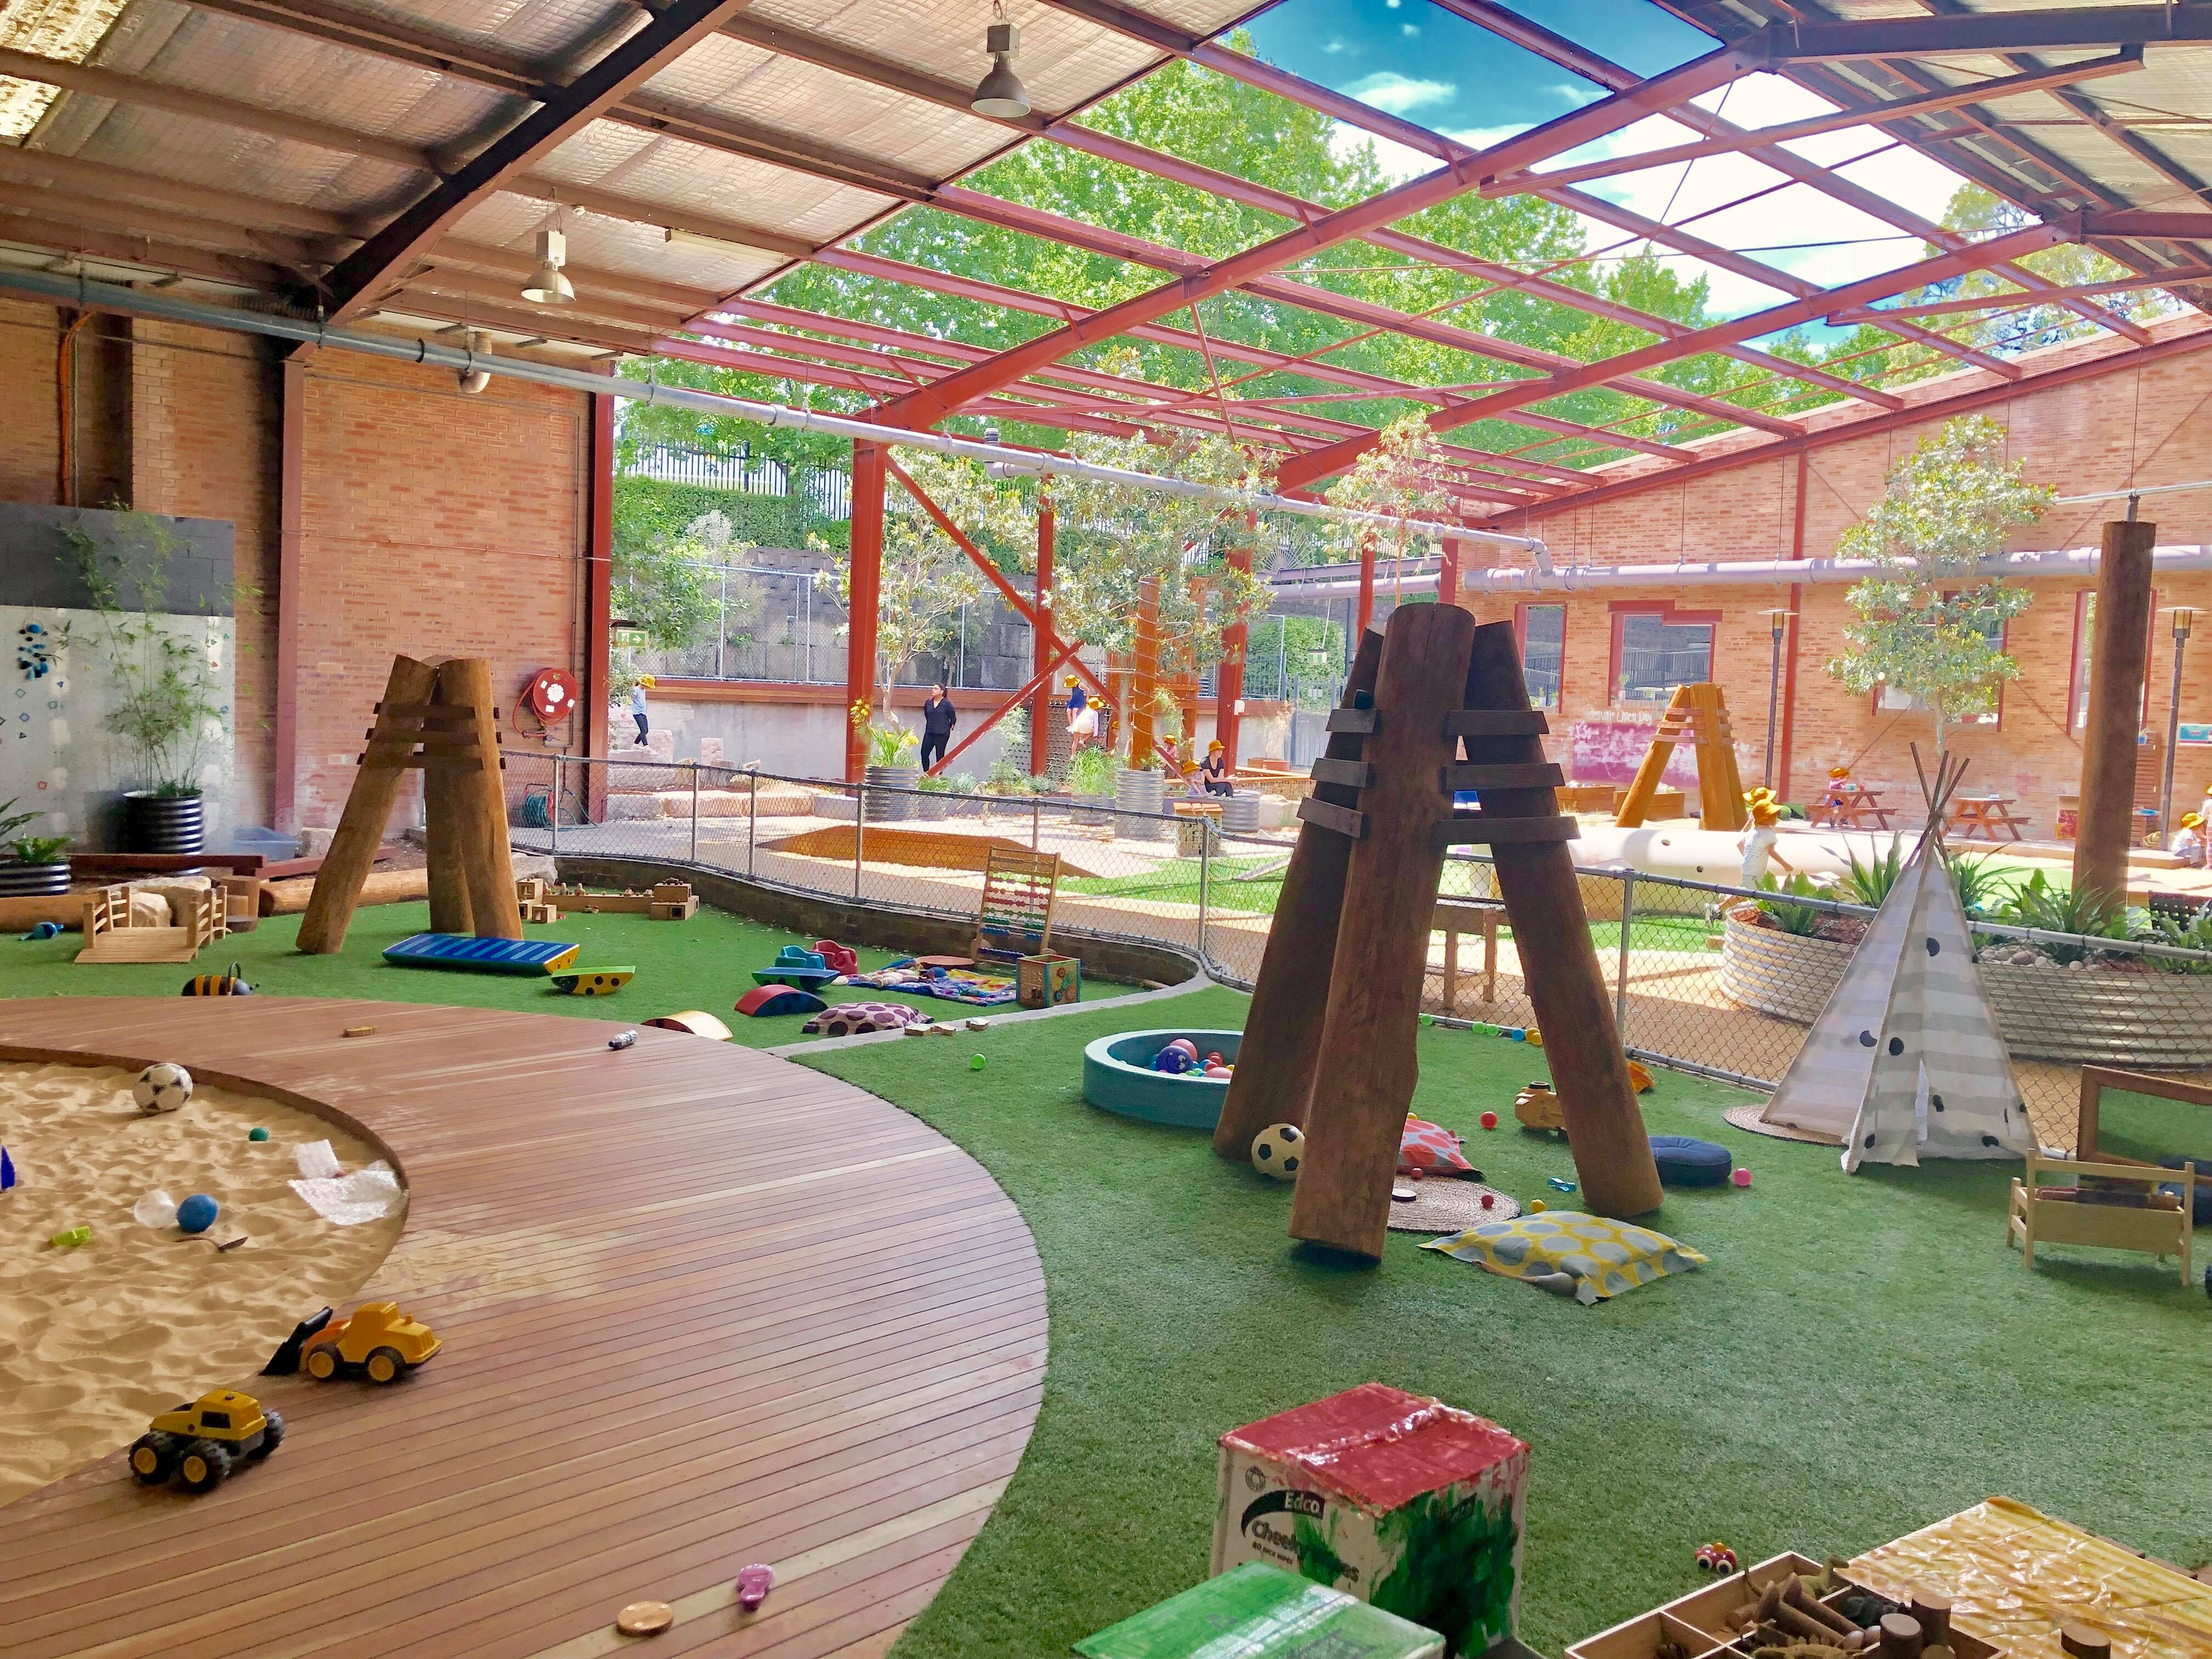 RDM Visits: The Newly Renovated Acre Woods Gladesville